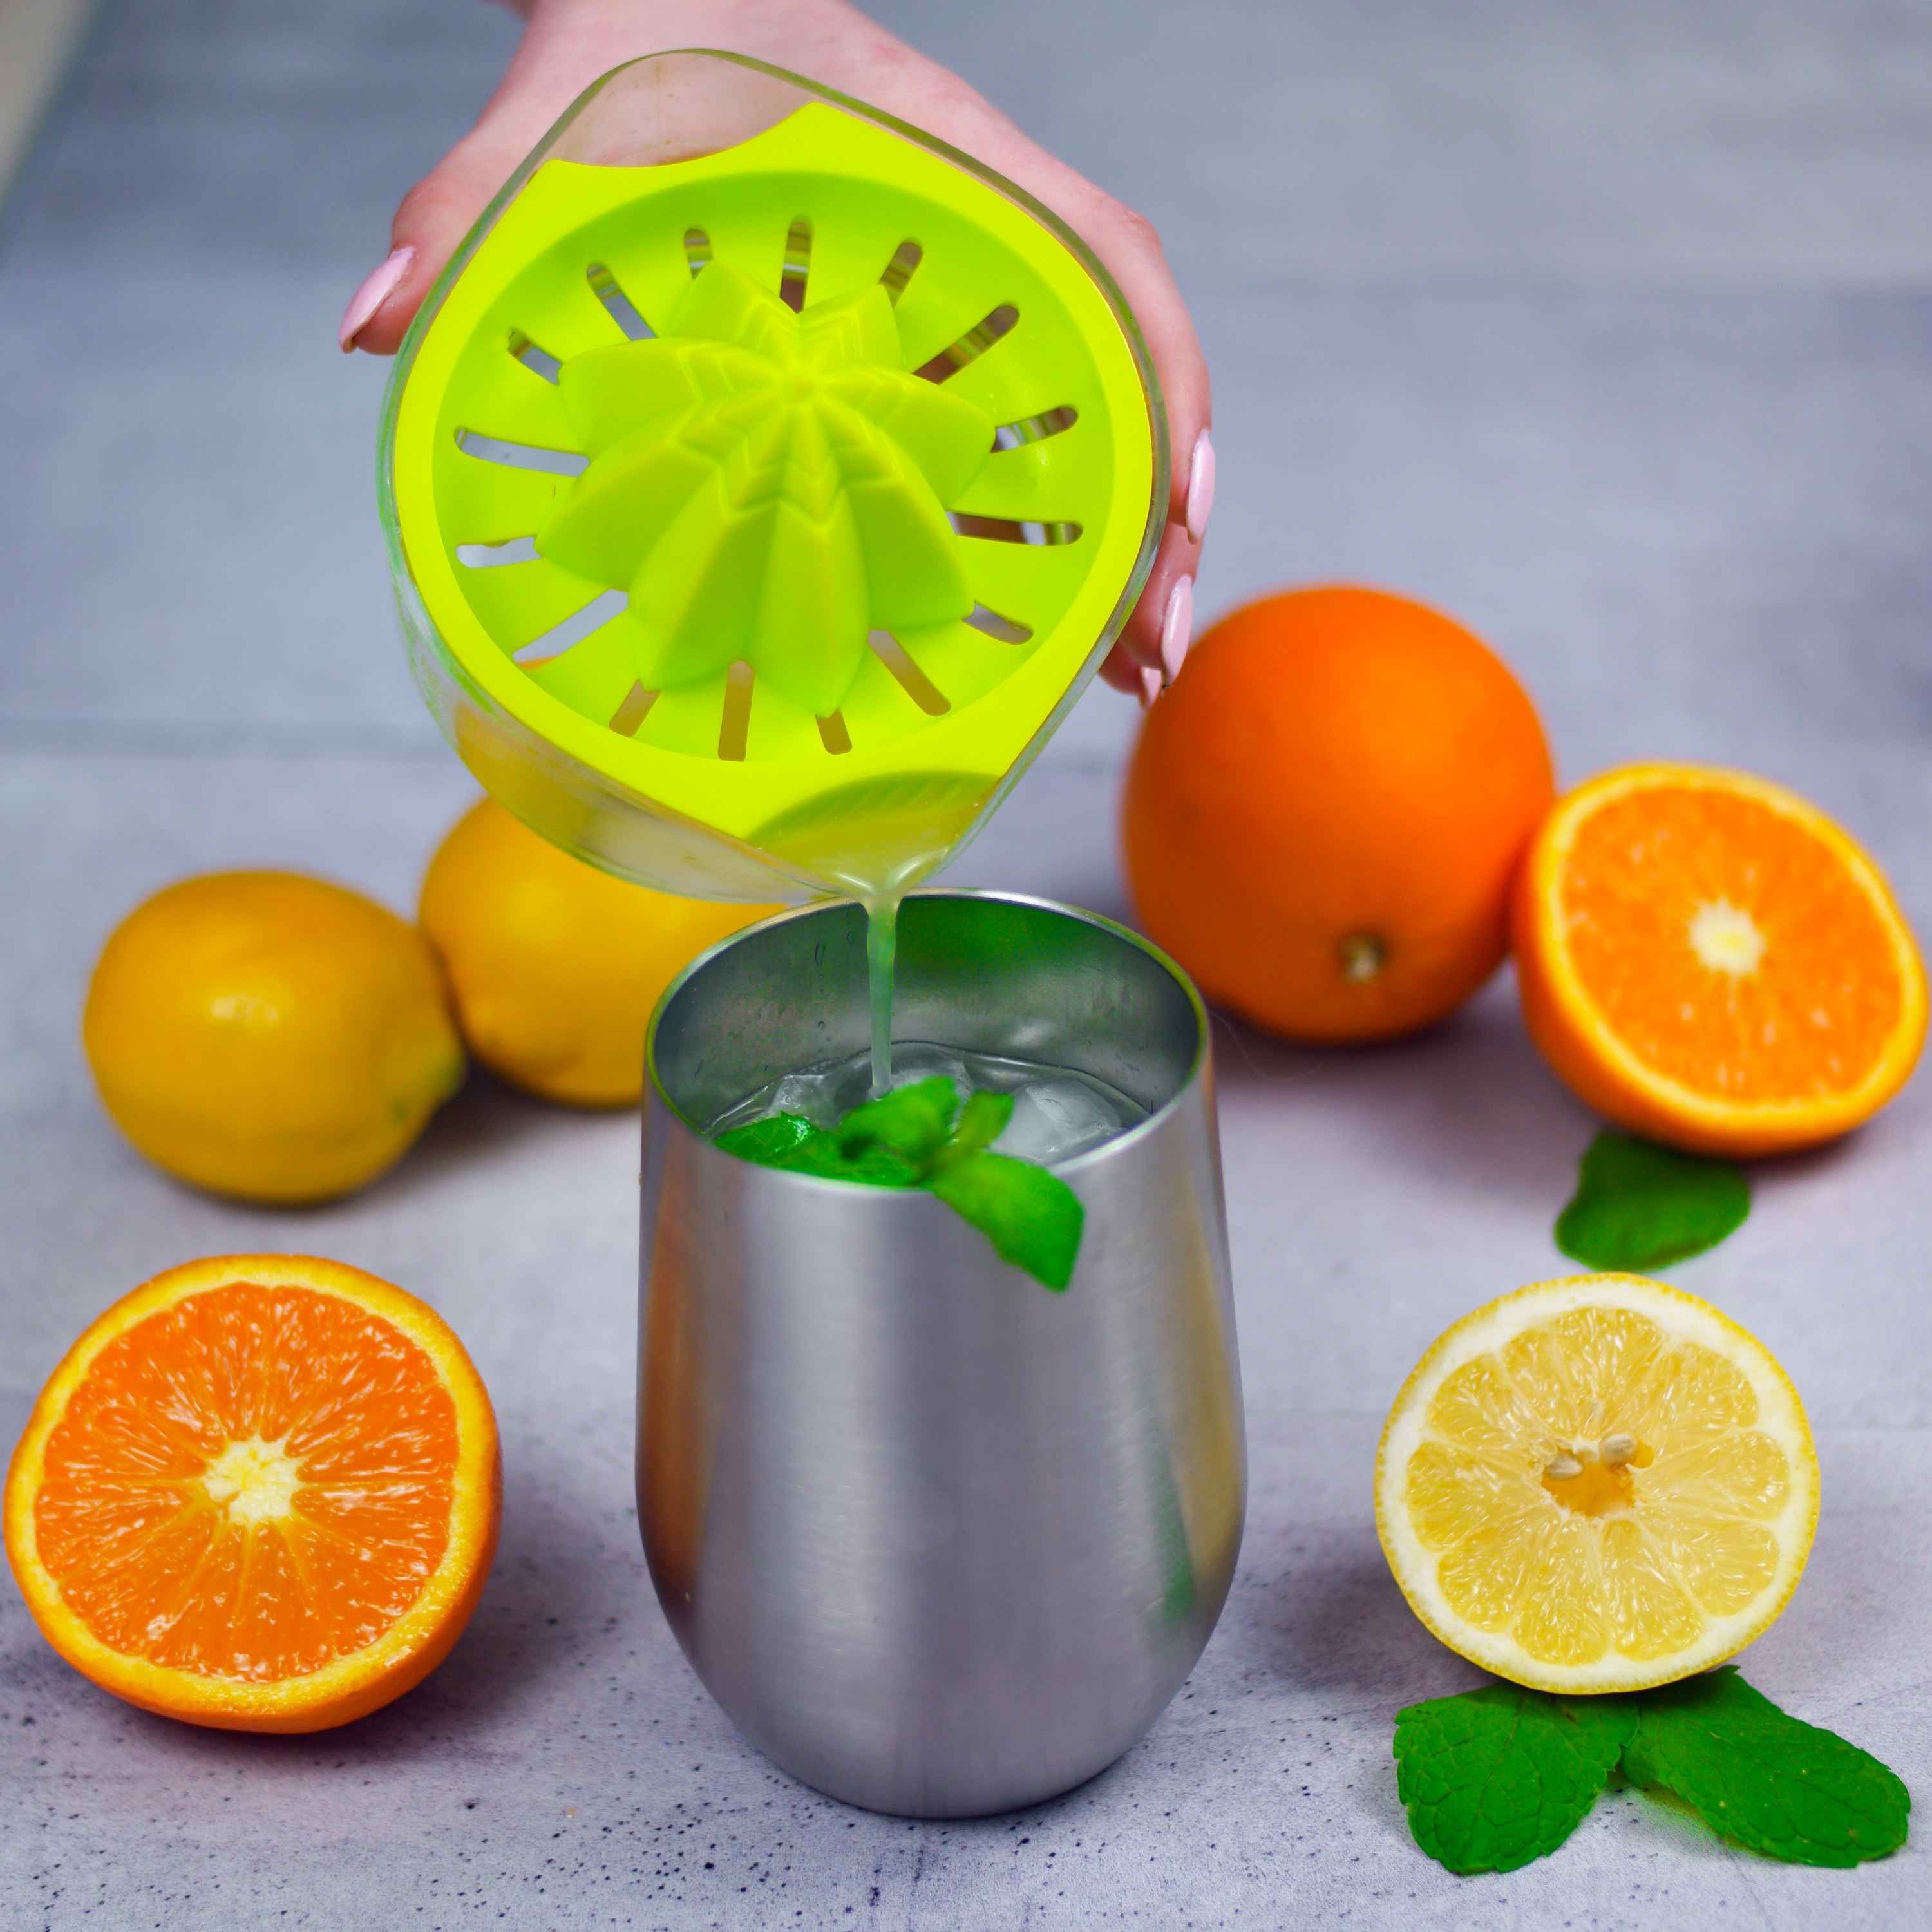 8 oz. Hand Lemon Juicer  (with ARK Reamer for Maximum Extraction) Top Rated Premium Design - EZ Citrus Juicer